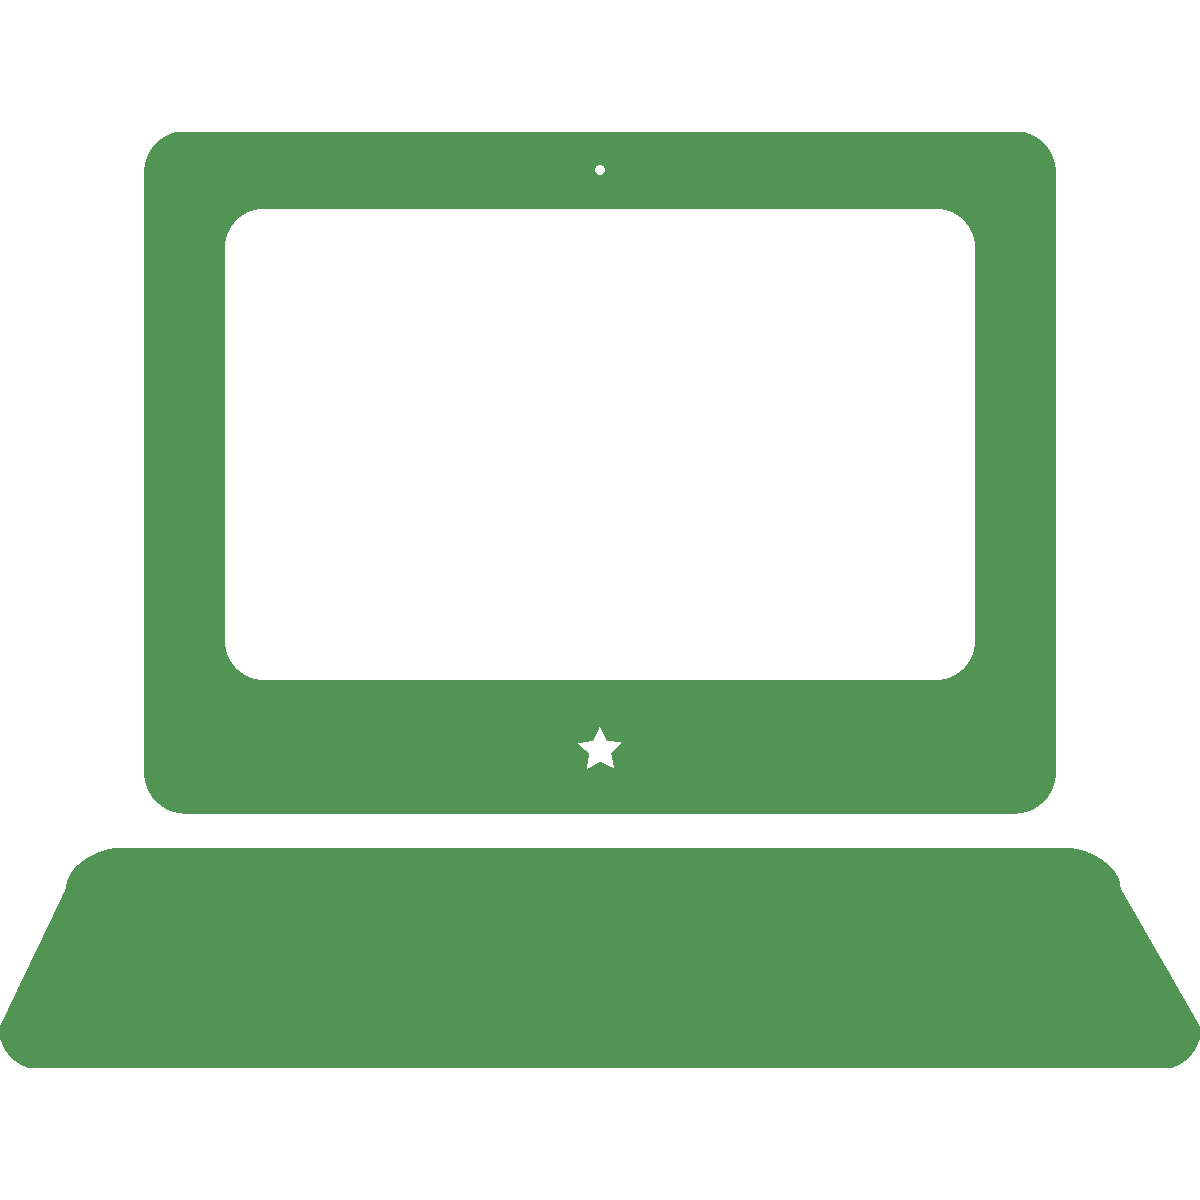 Laptop designed by Venkatesh Aiyulu from the Noun Project